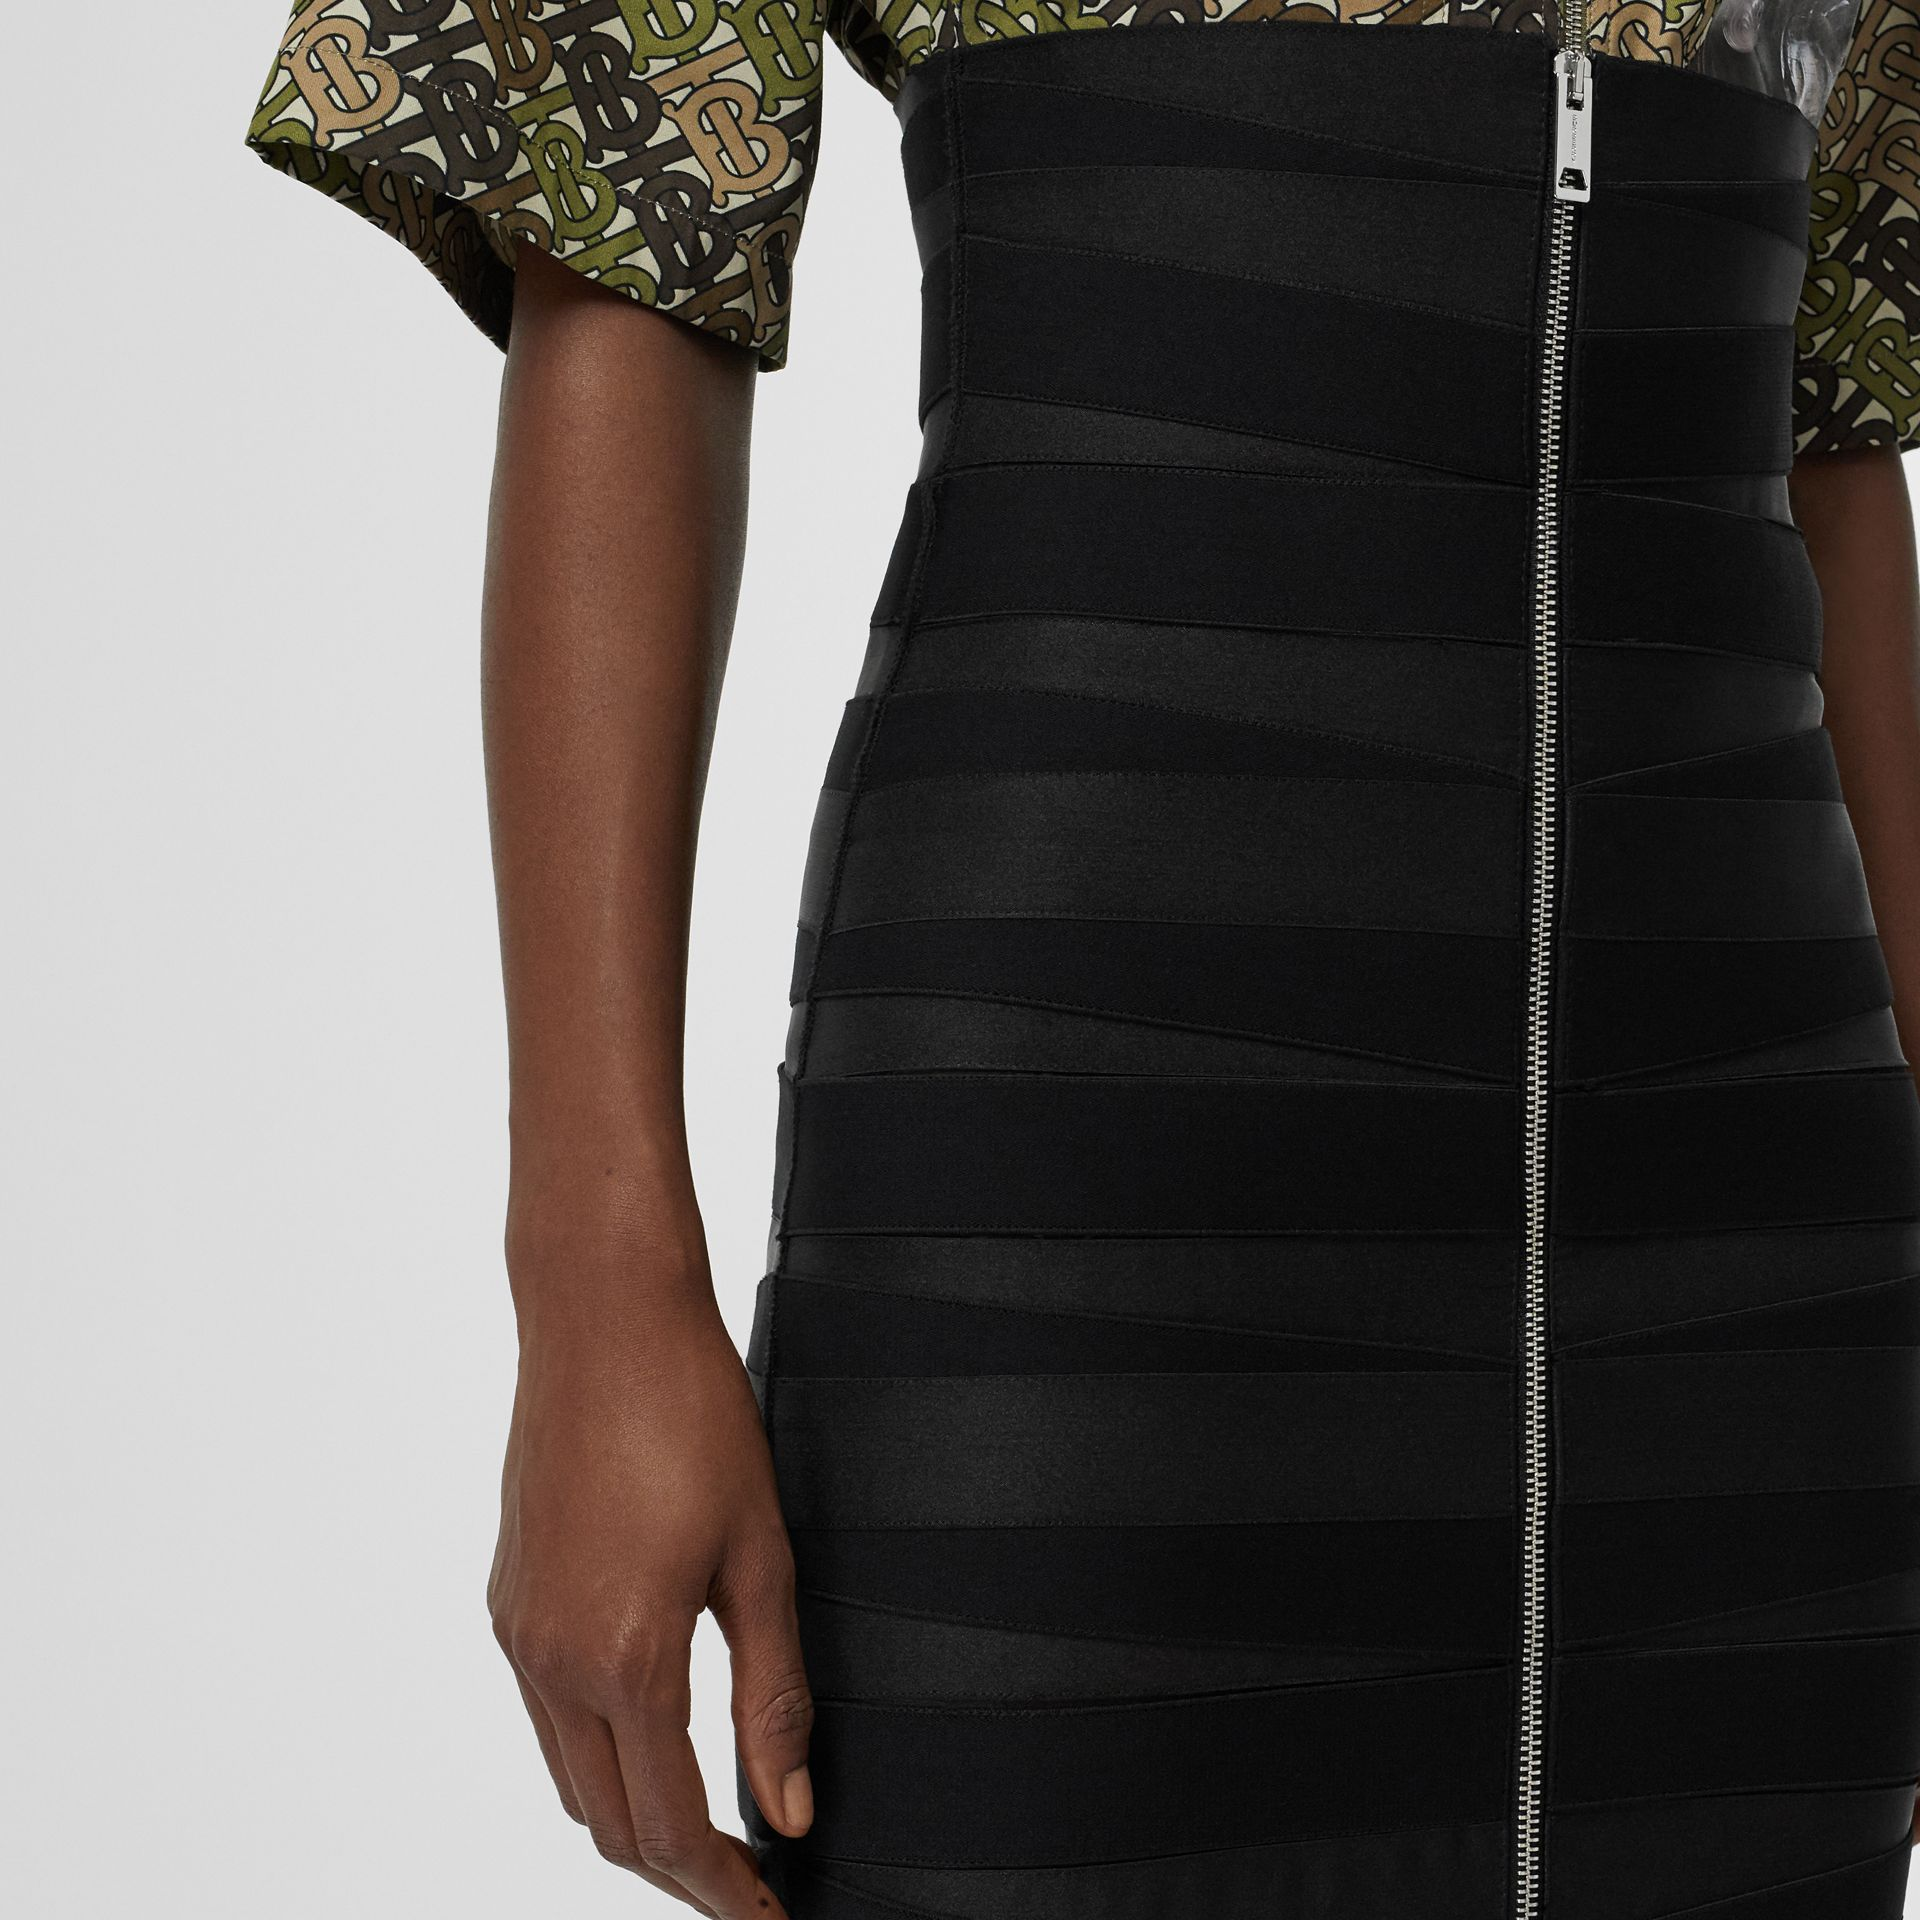 Stretch Zip-front Bandage Skirt in Black - Women | Burberry Australia - gallery image 1